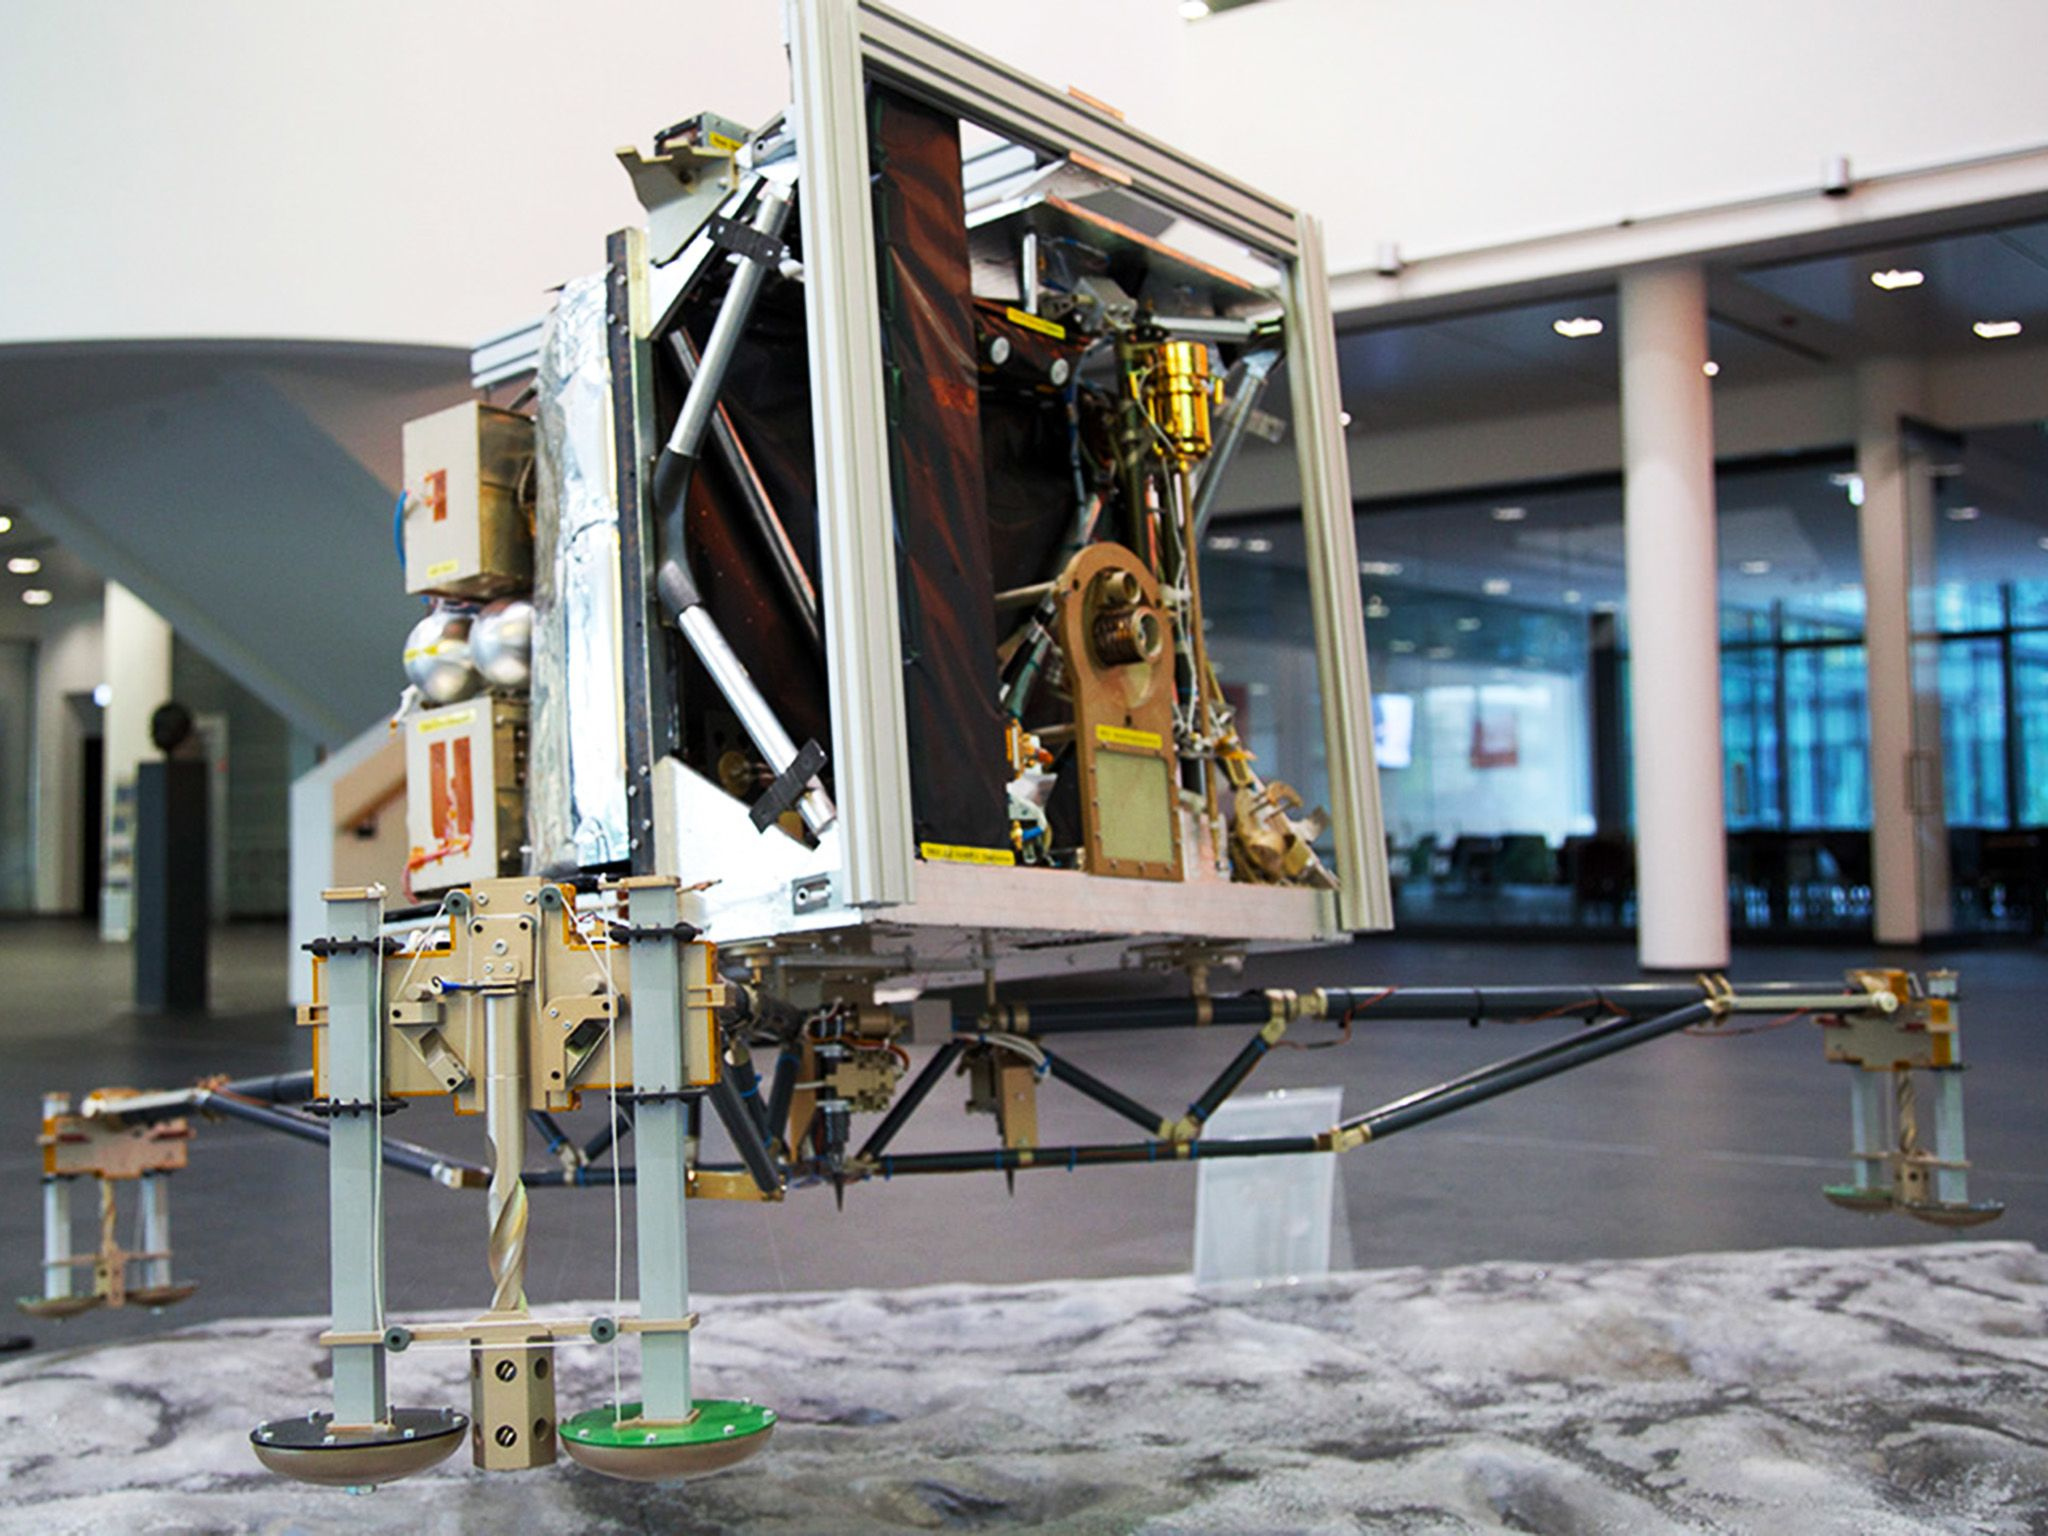 Max Planck Institute of Solar System Research, Gottingen, Germany: Philae Replica - Max Planck In... [Photo of the day - نوامبر 2014]